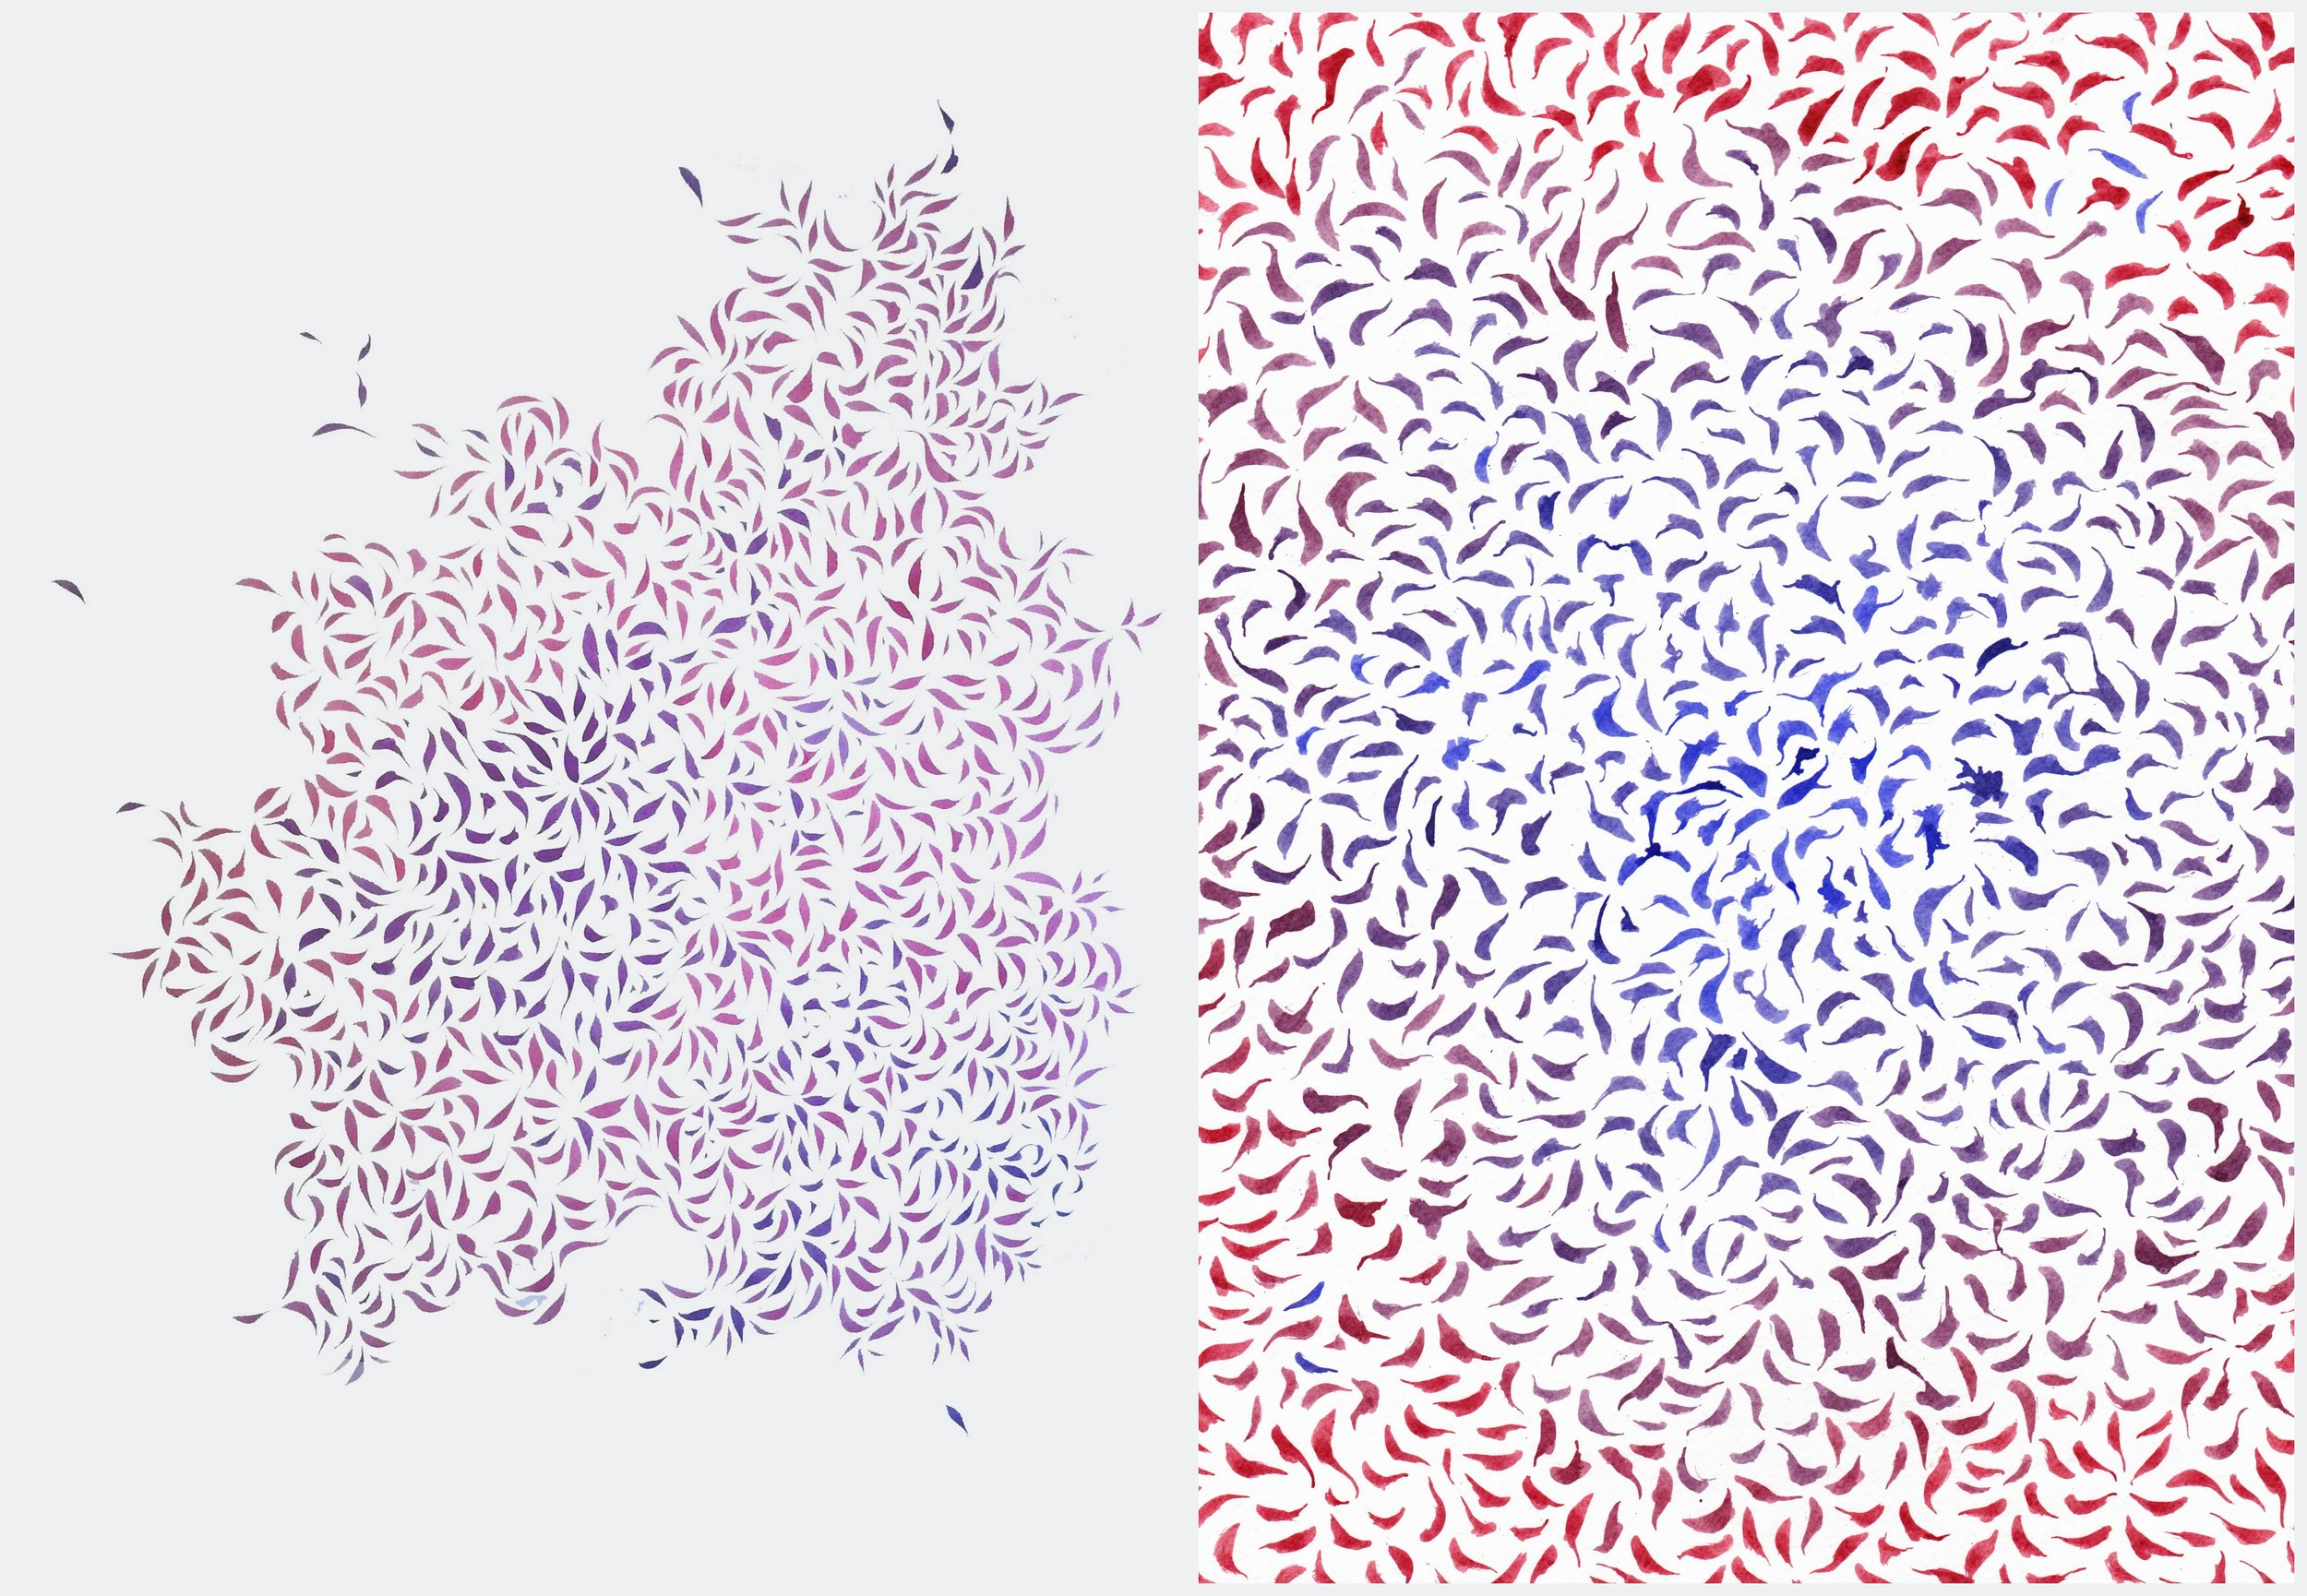 Image description; two ink patterns made from cellular ink shapes in mixtures of blue and pink ink